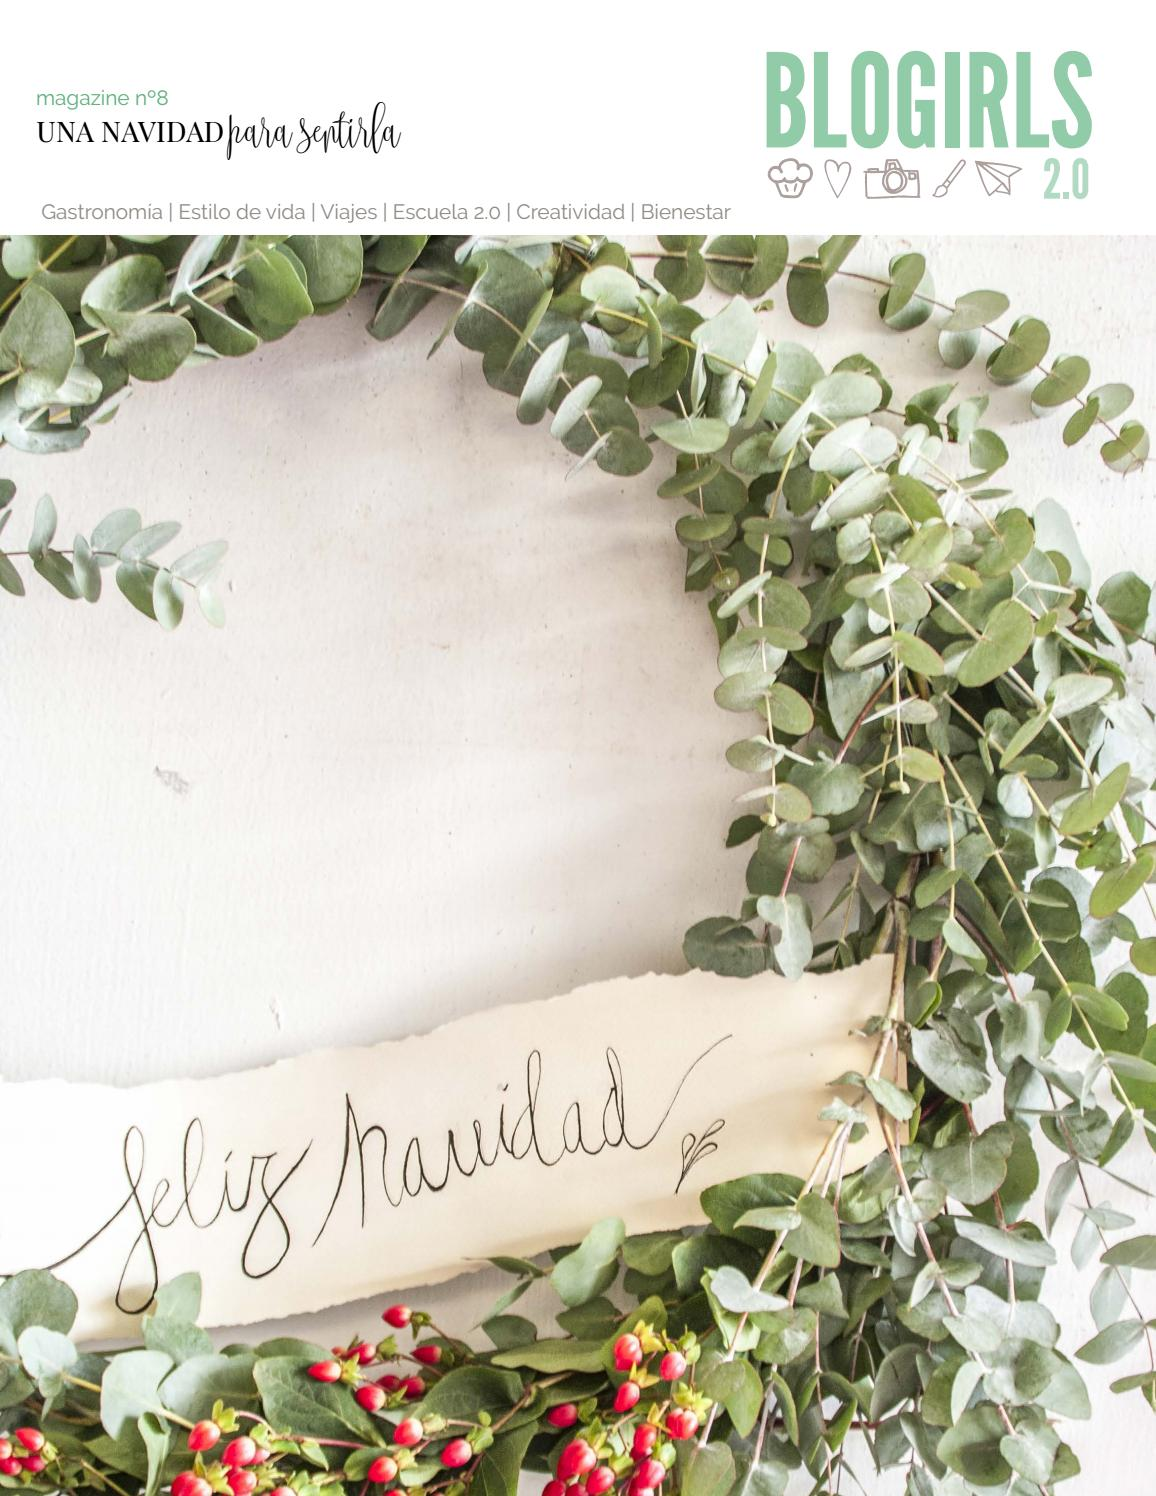 Blogirls 2.0 Magazine - Una Navidad para sentirla by Blogirls 2.0 ...